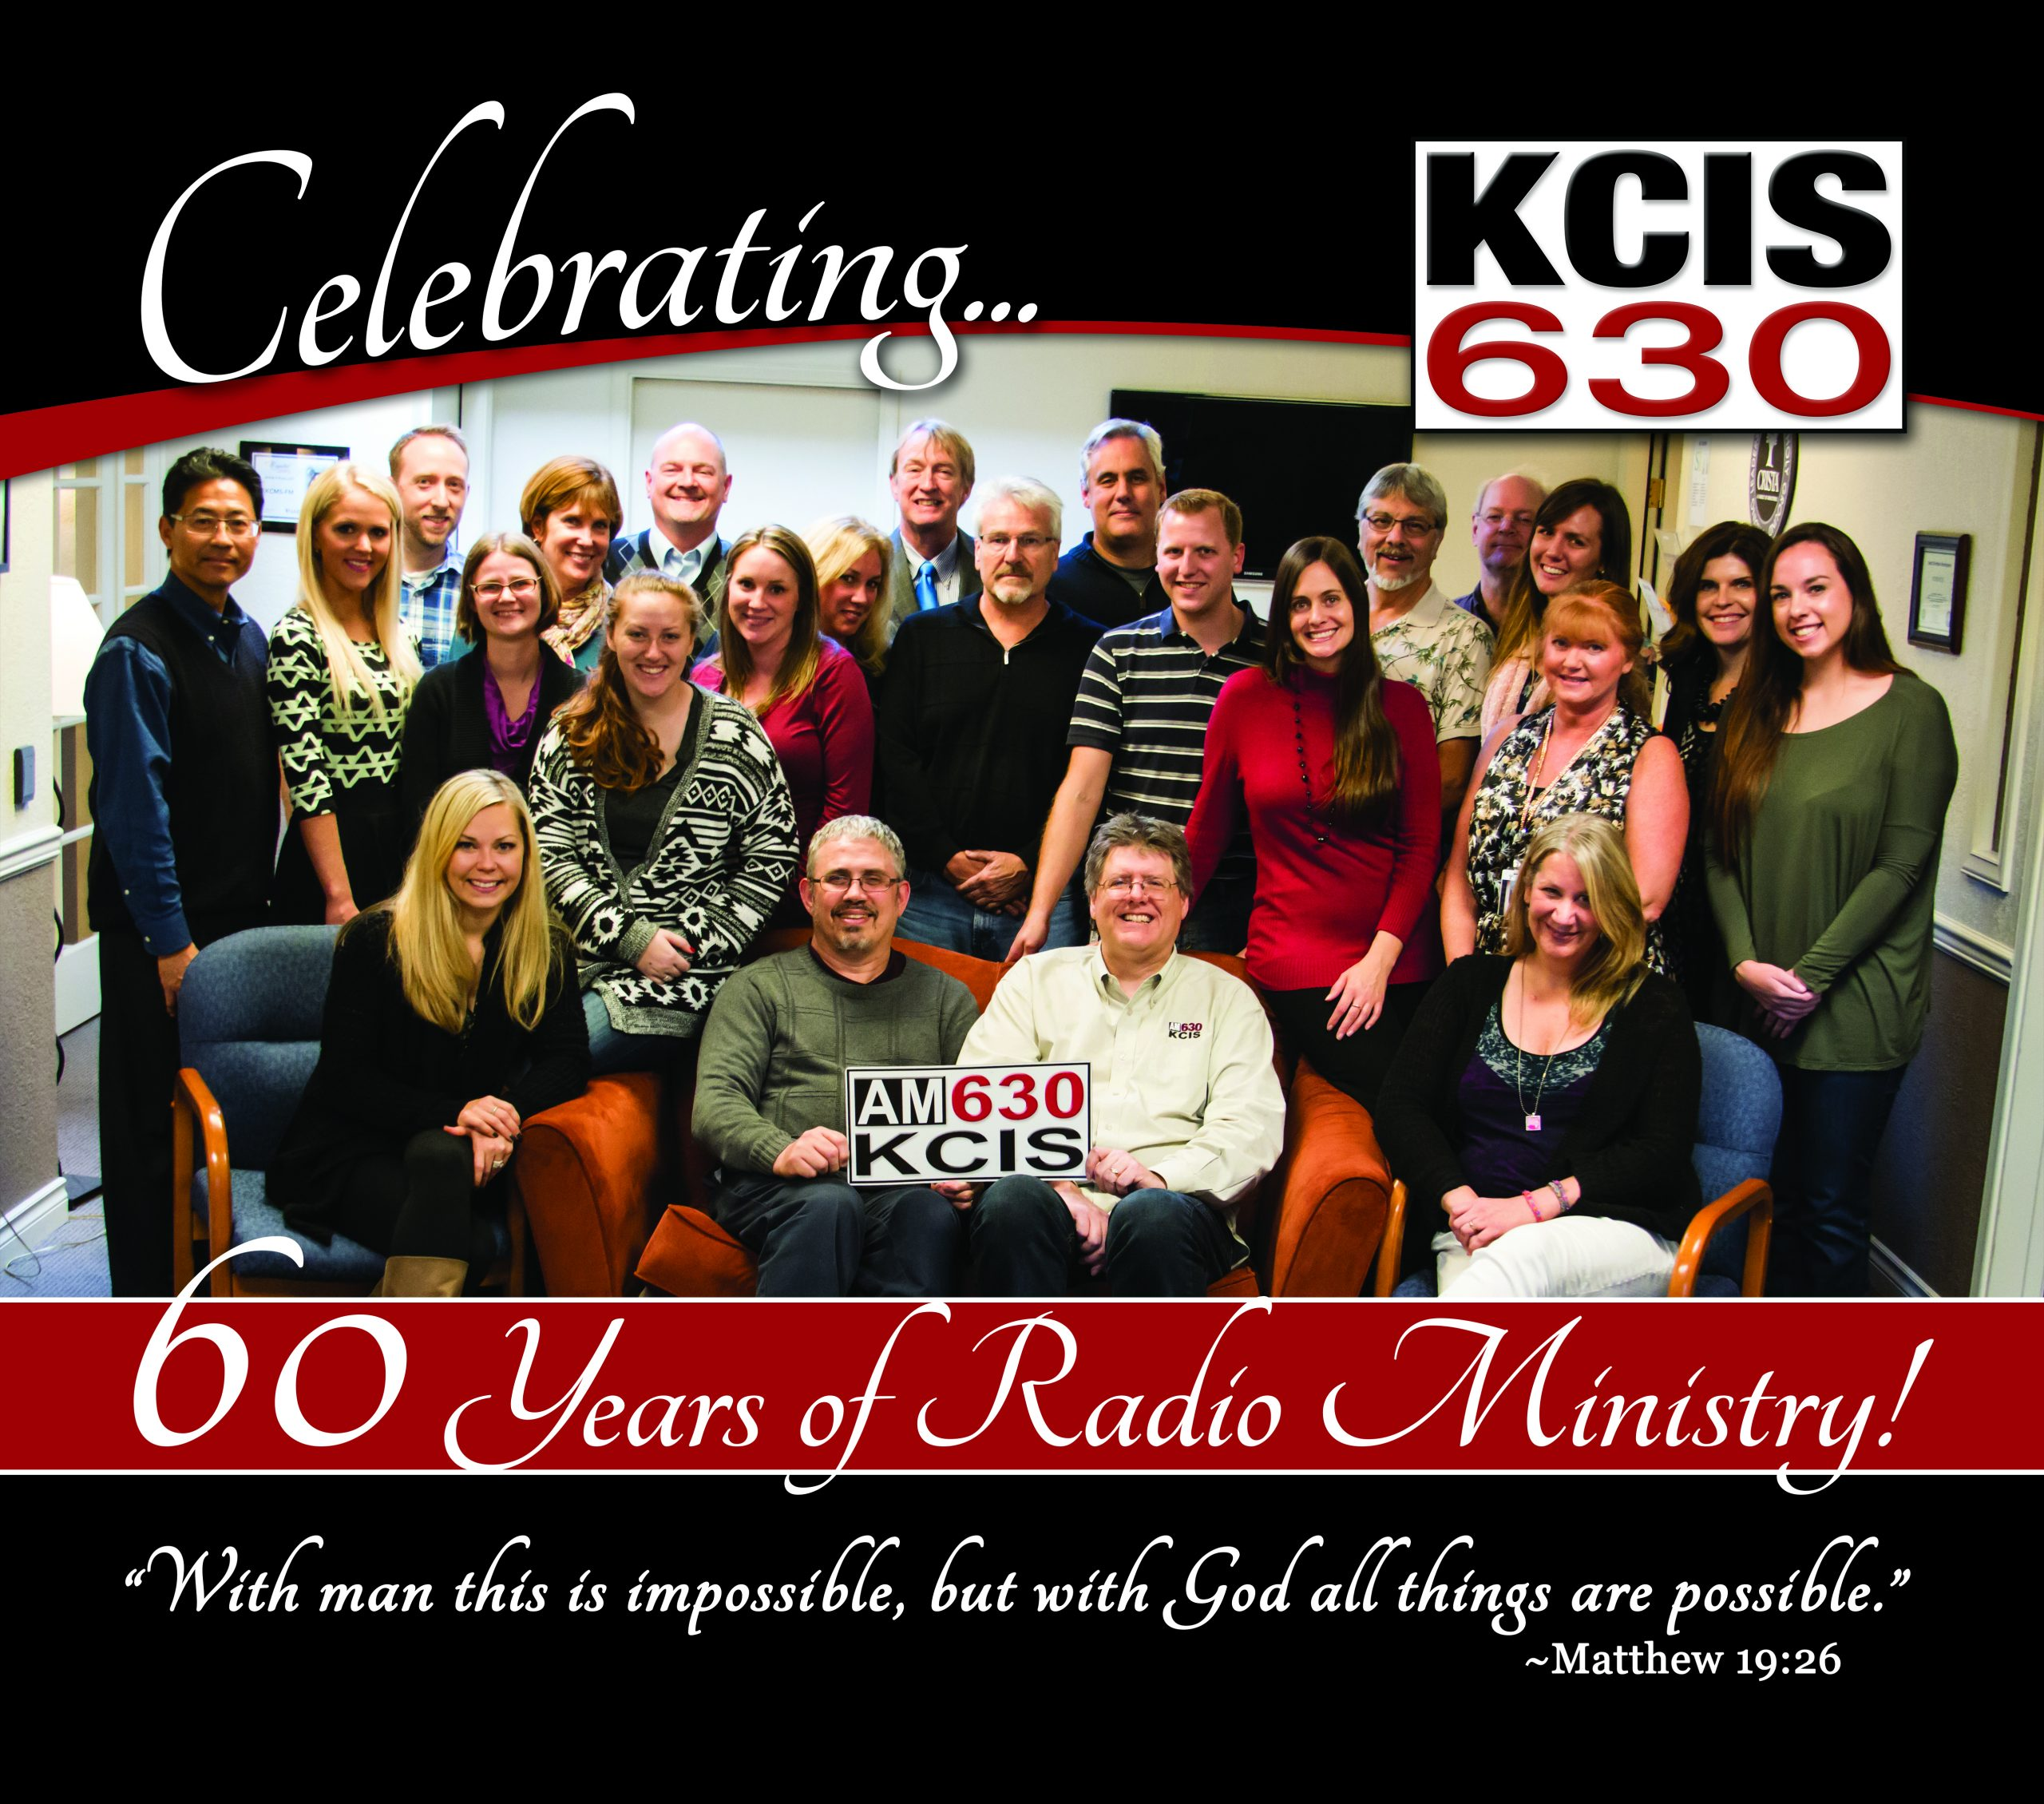 KCIS 630 Celebrates Diamond Anniversary